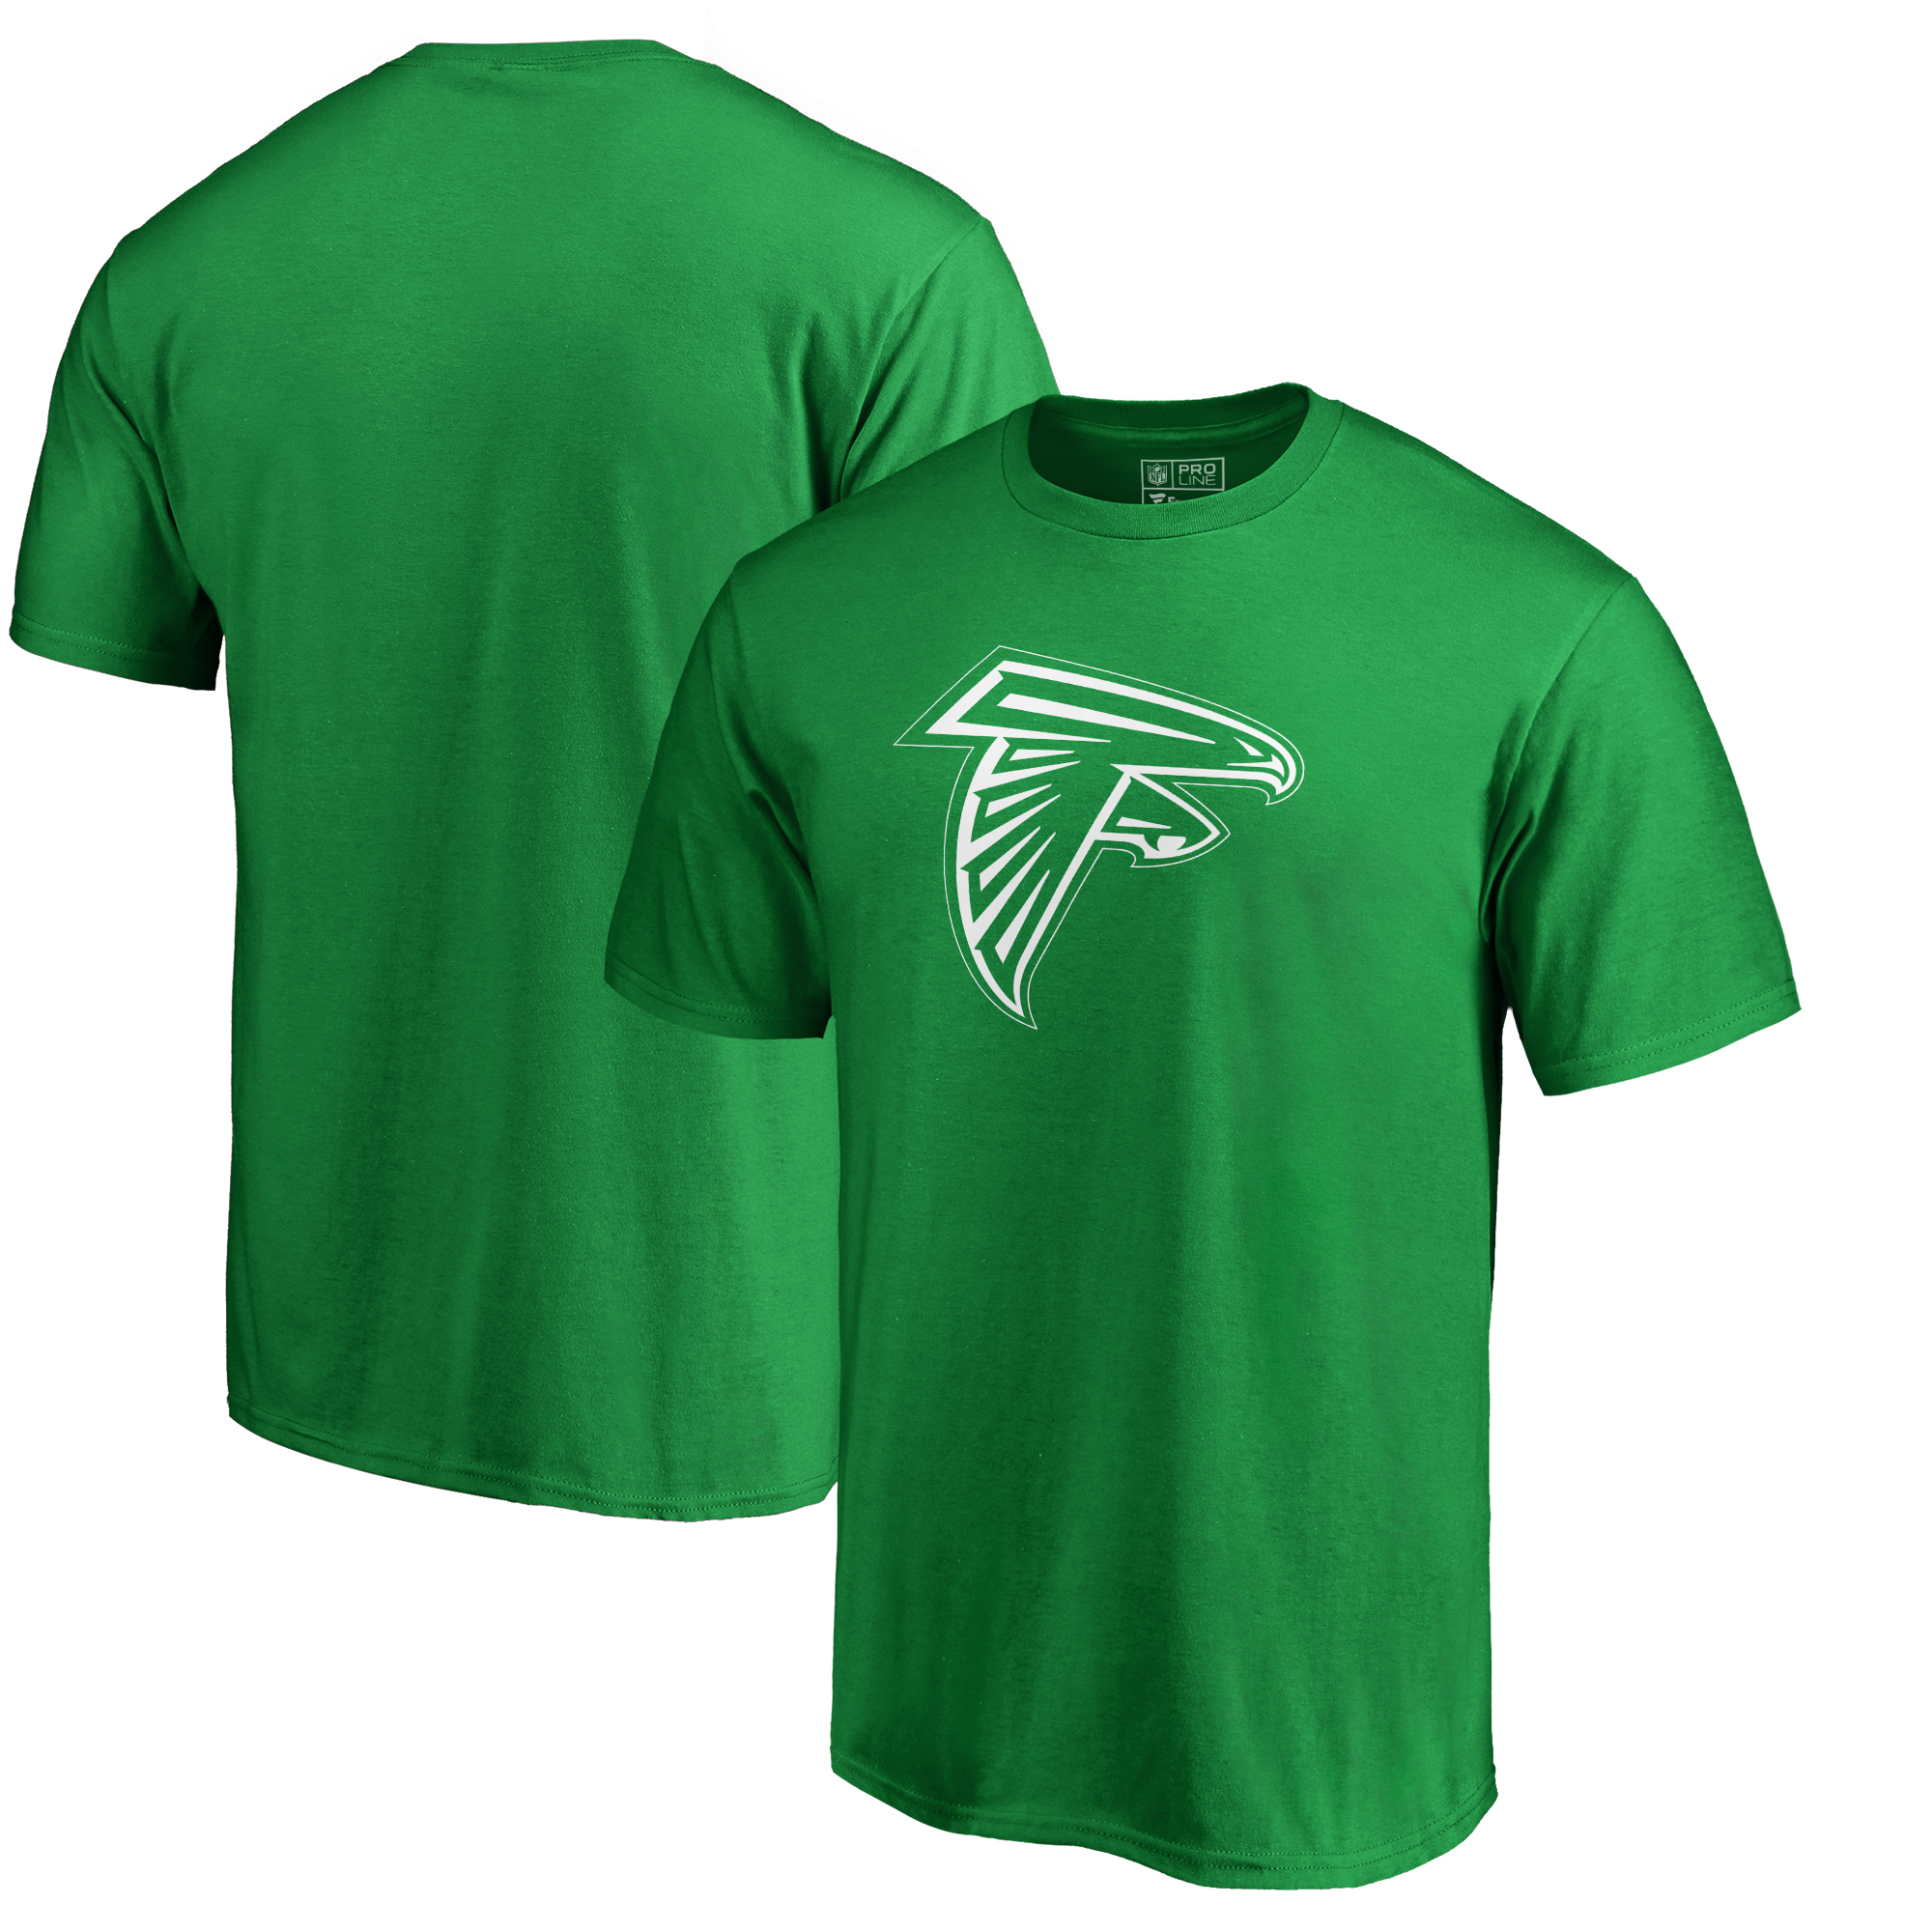 Atlanta Falcons NFL Pro Line by Fanatics Branded Big & Tall St. Patrick's Day White Logo T-Shirt - Green